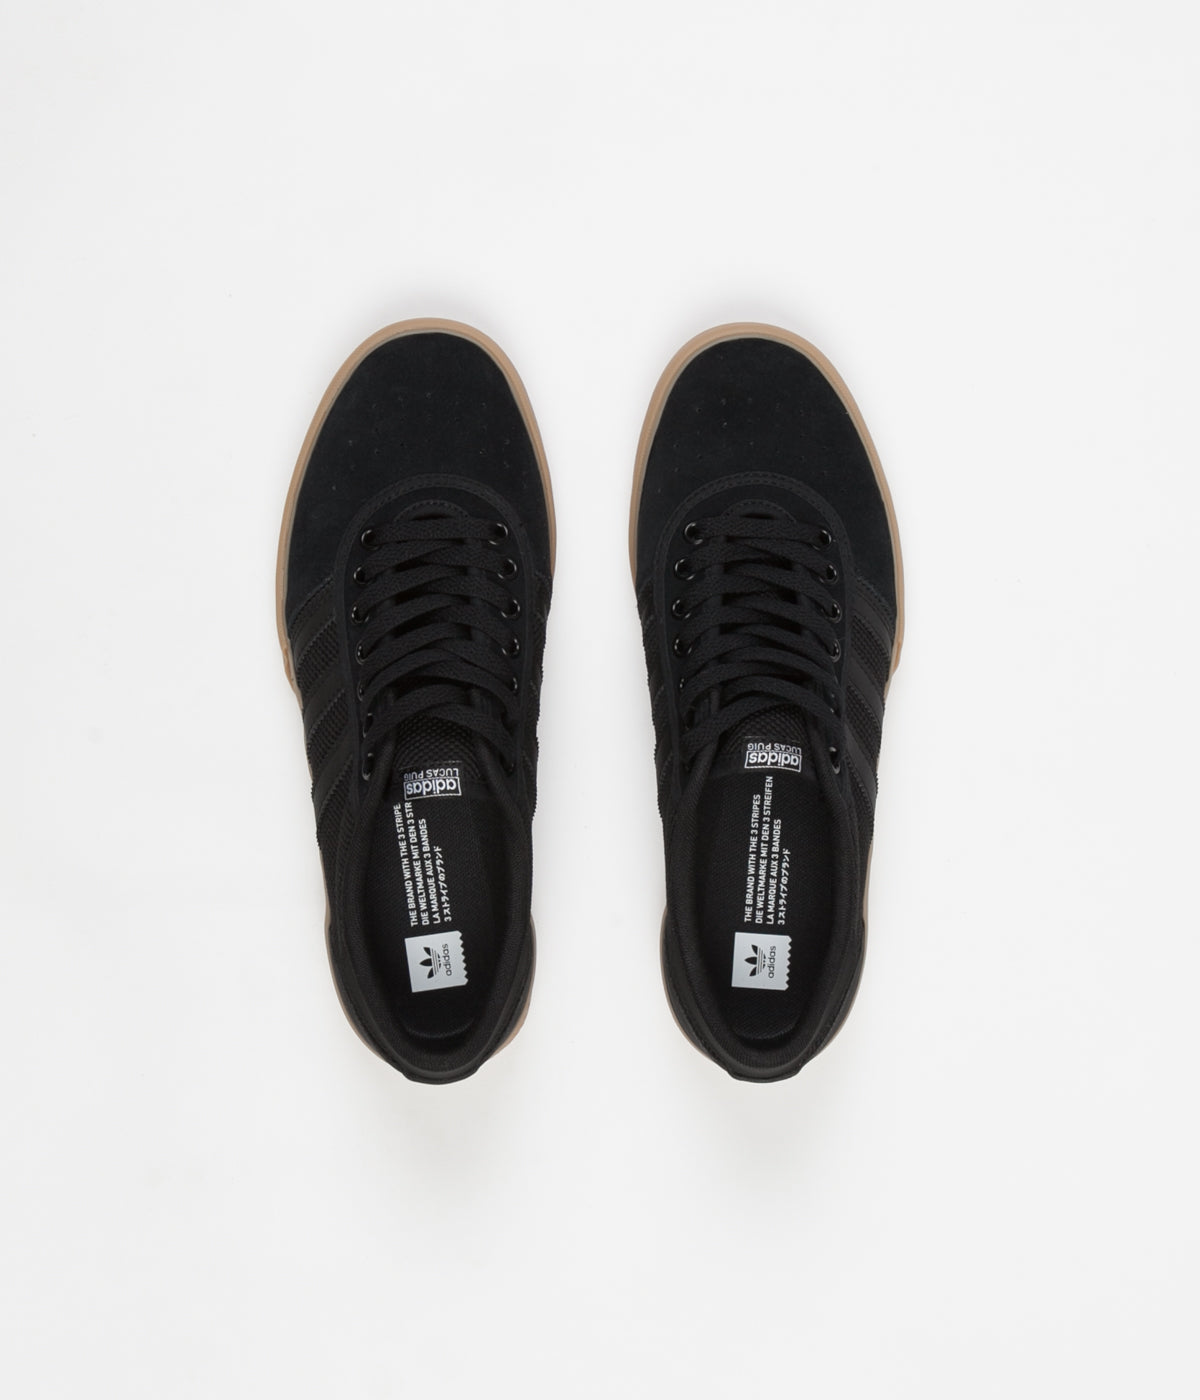 Adidas Lucas Premiere Shoes - Core Black / White / Gum4